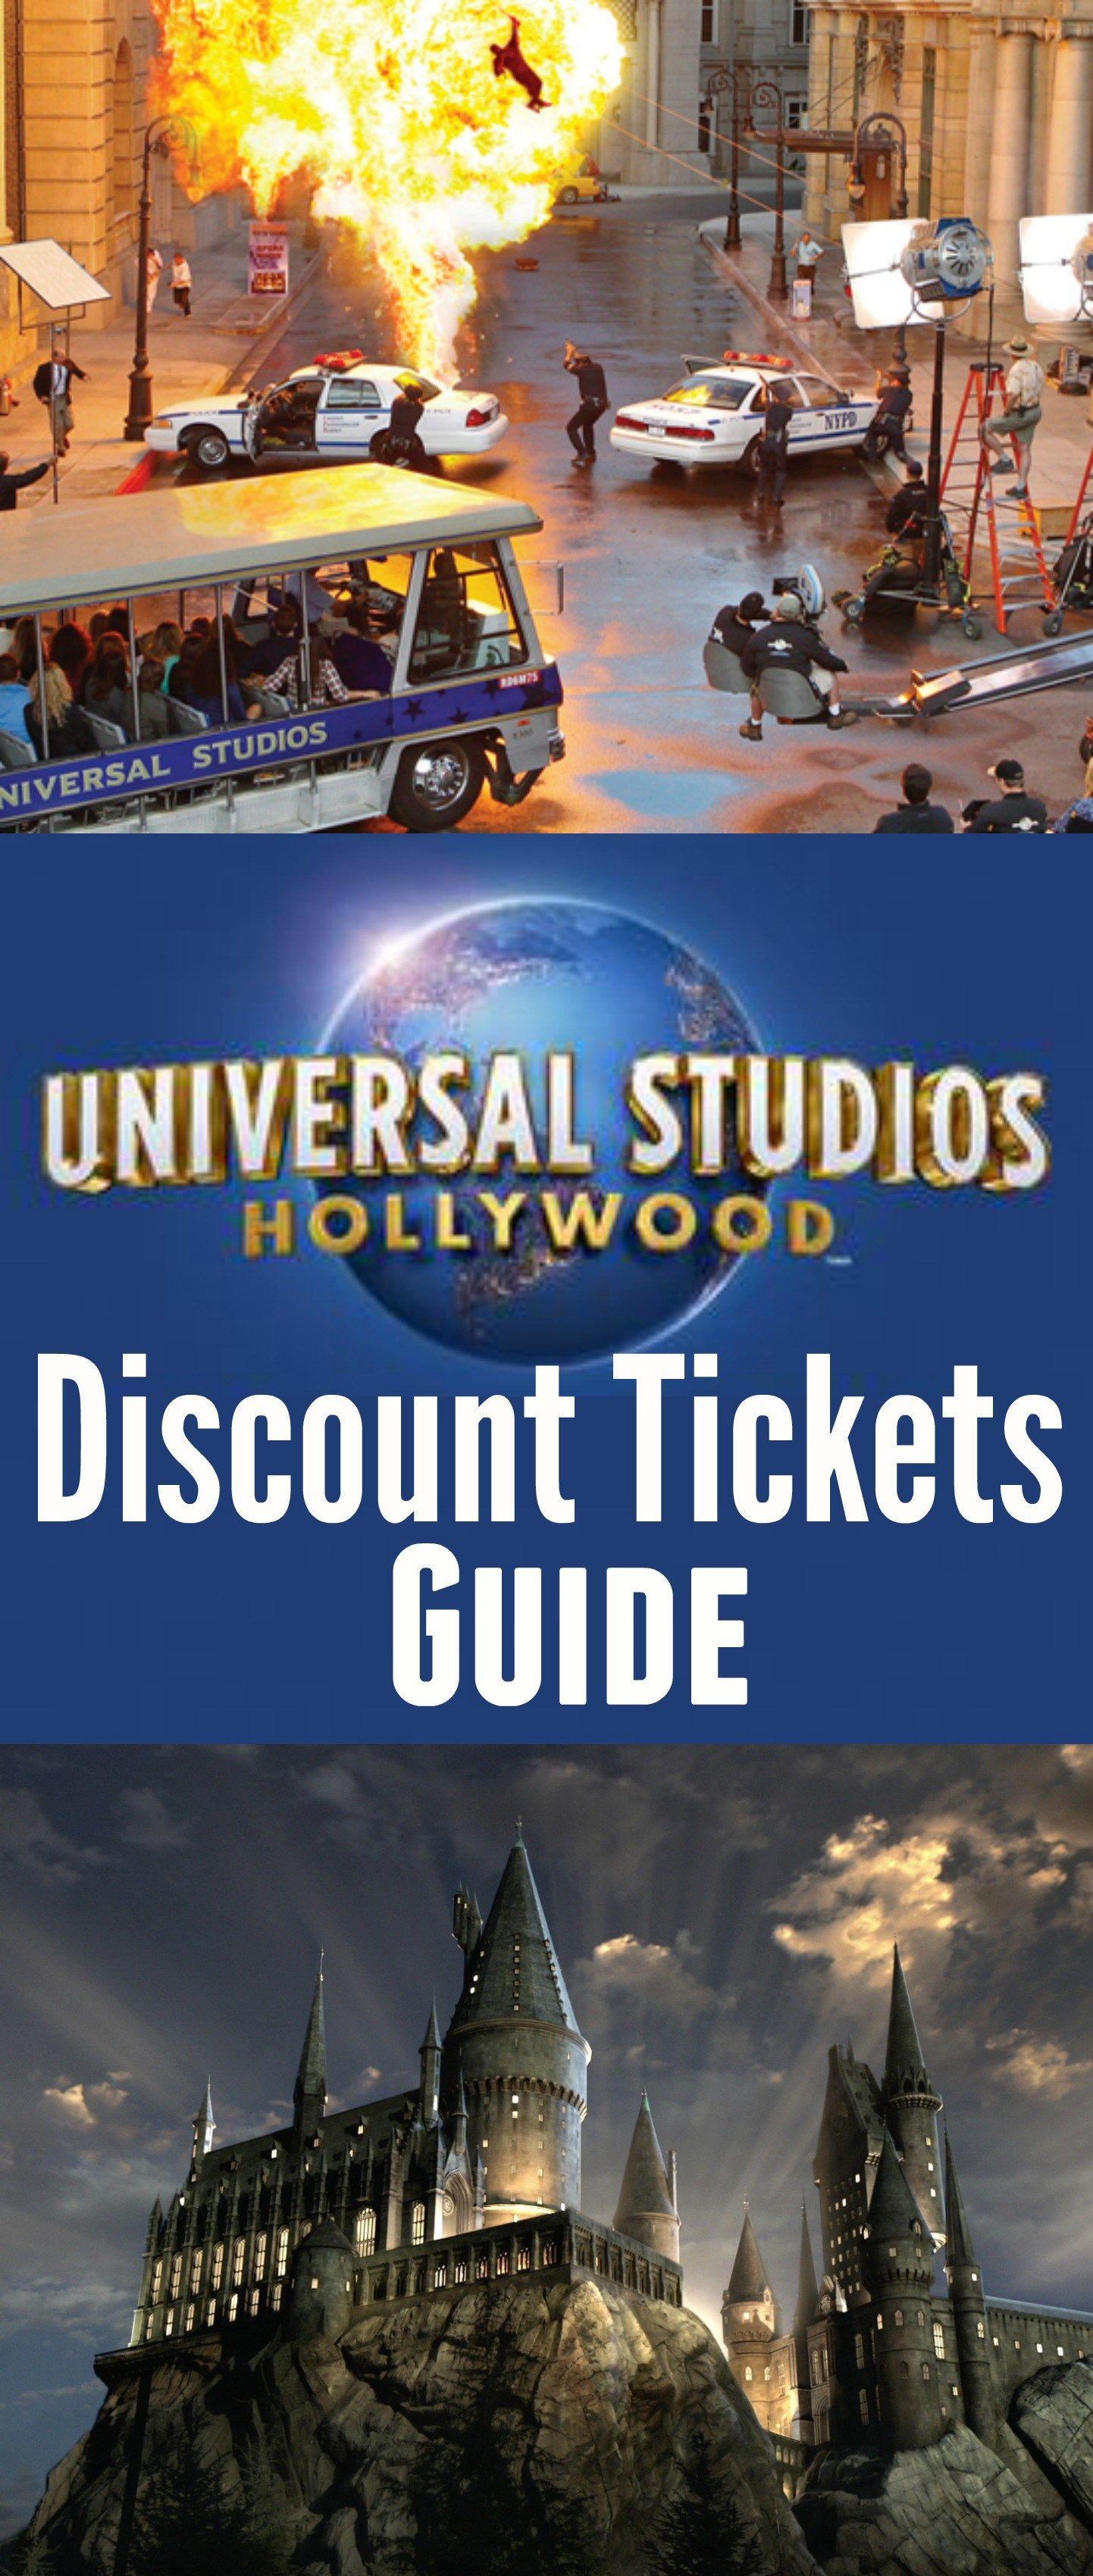 Discount Universal Studios Hollywood Tickets 2020 Get Tickets Cheap With Images Universal Studios Hollywood Tickets Universal Studio Orlando Tickets Universal Studios